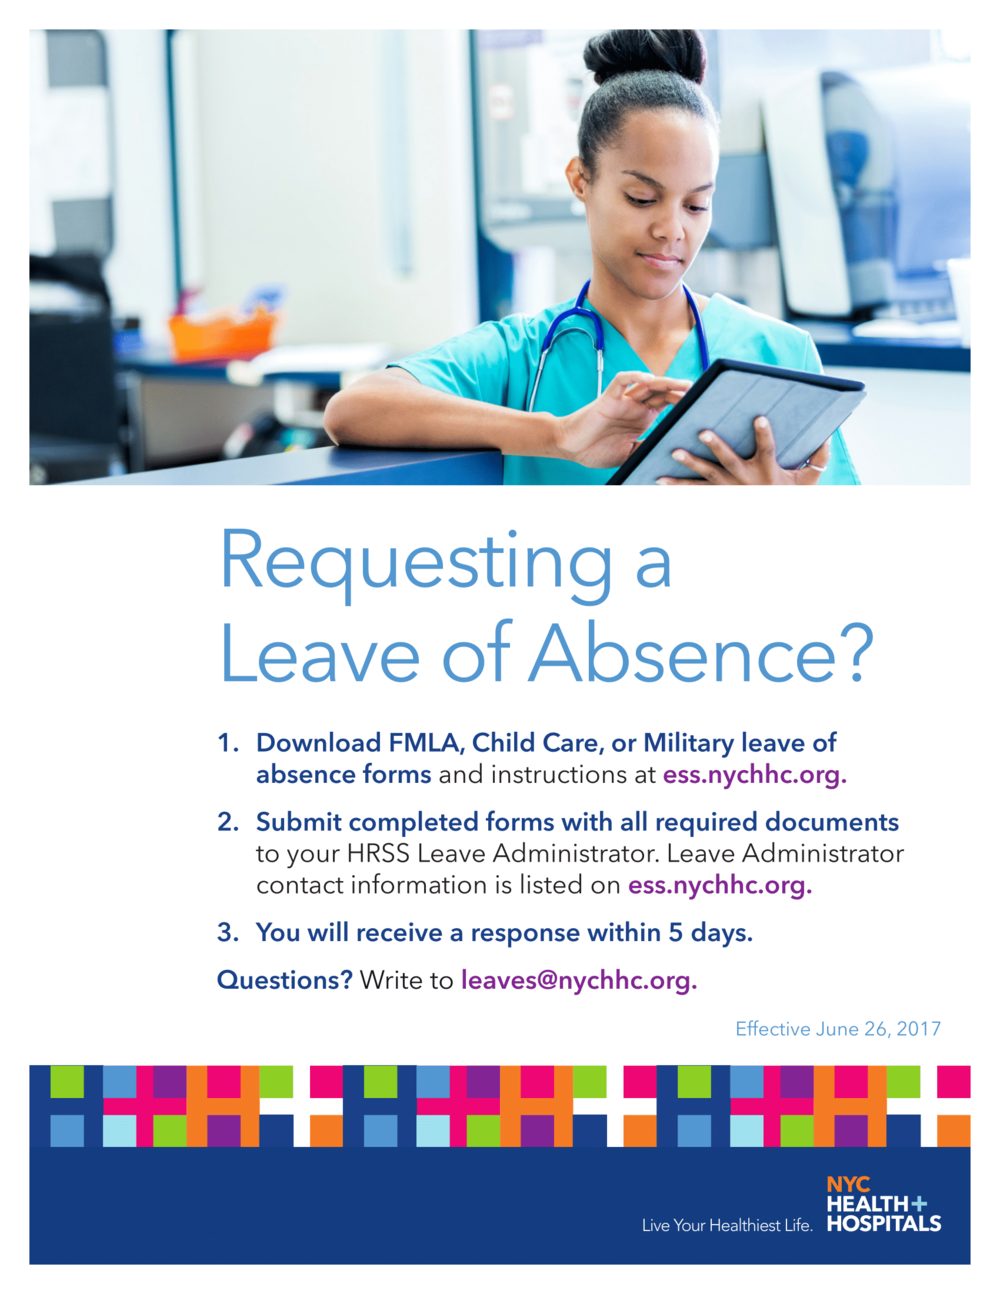 LeaveOfAbsence_Flyer-1.png